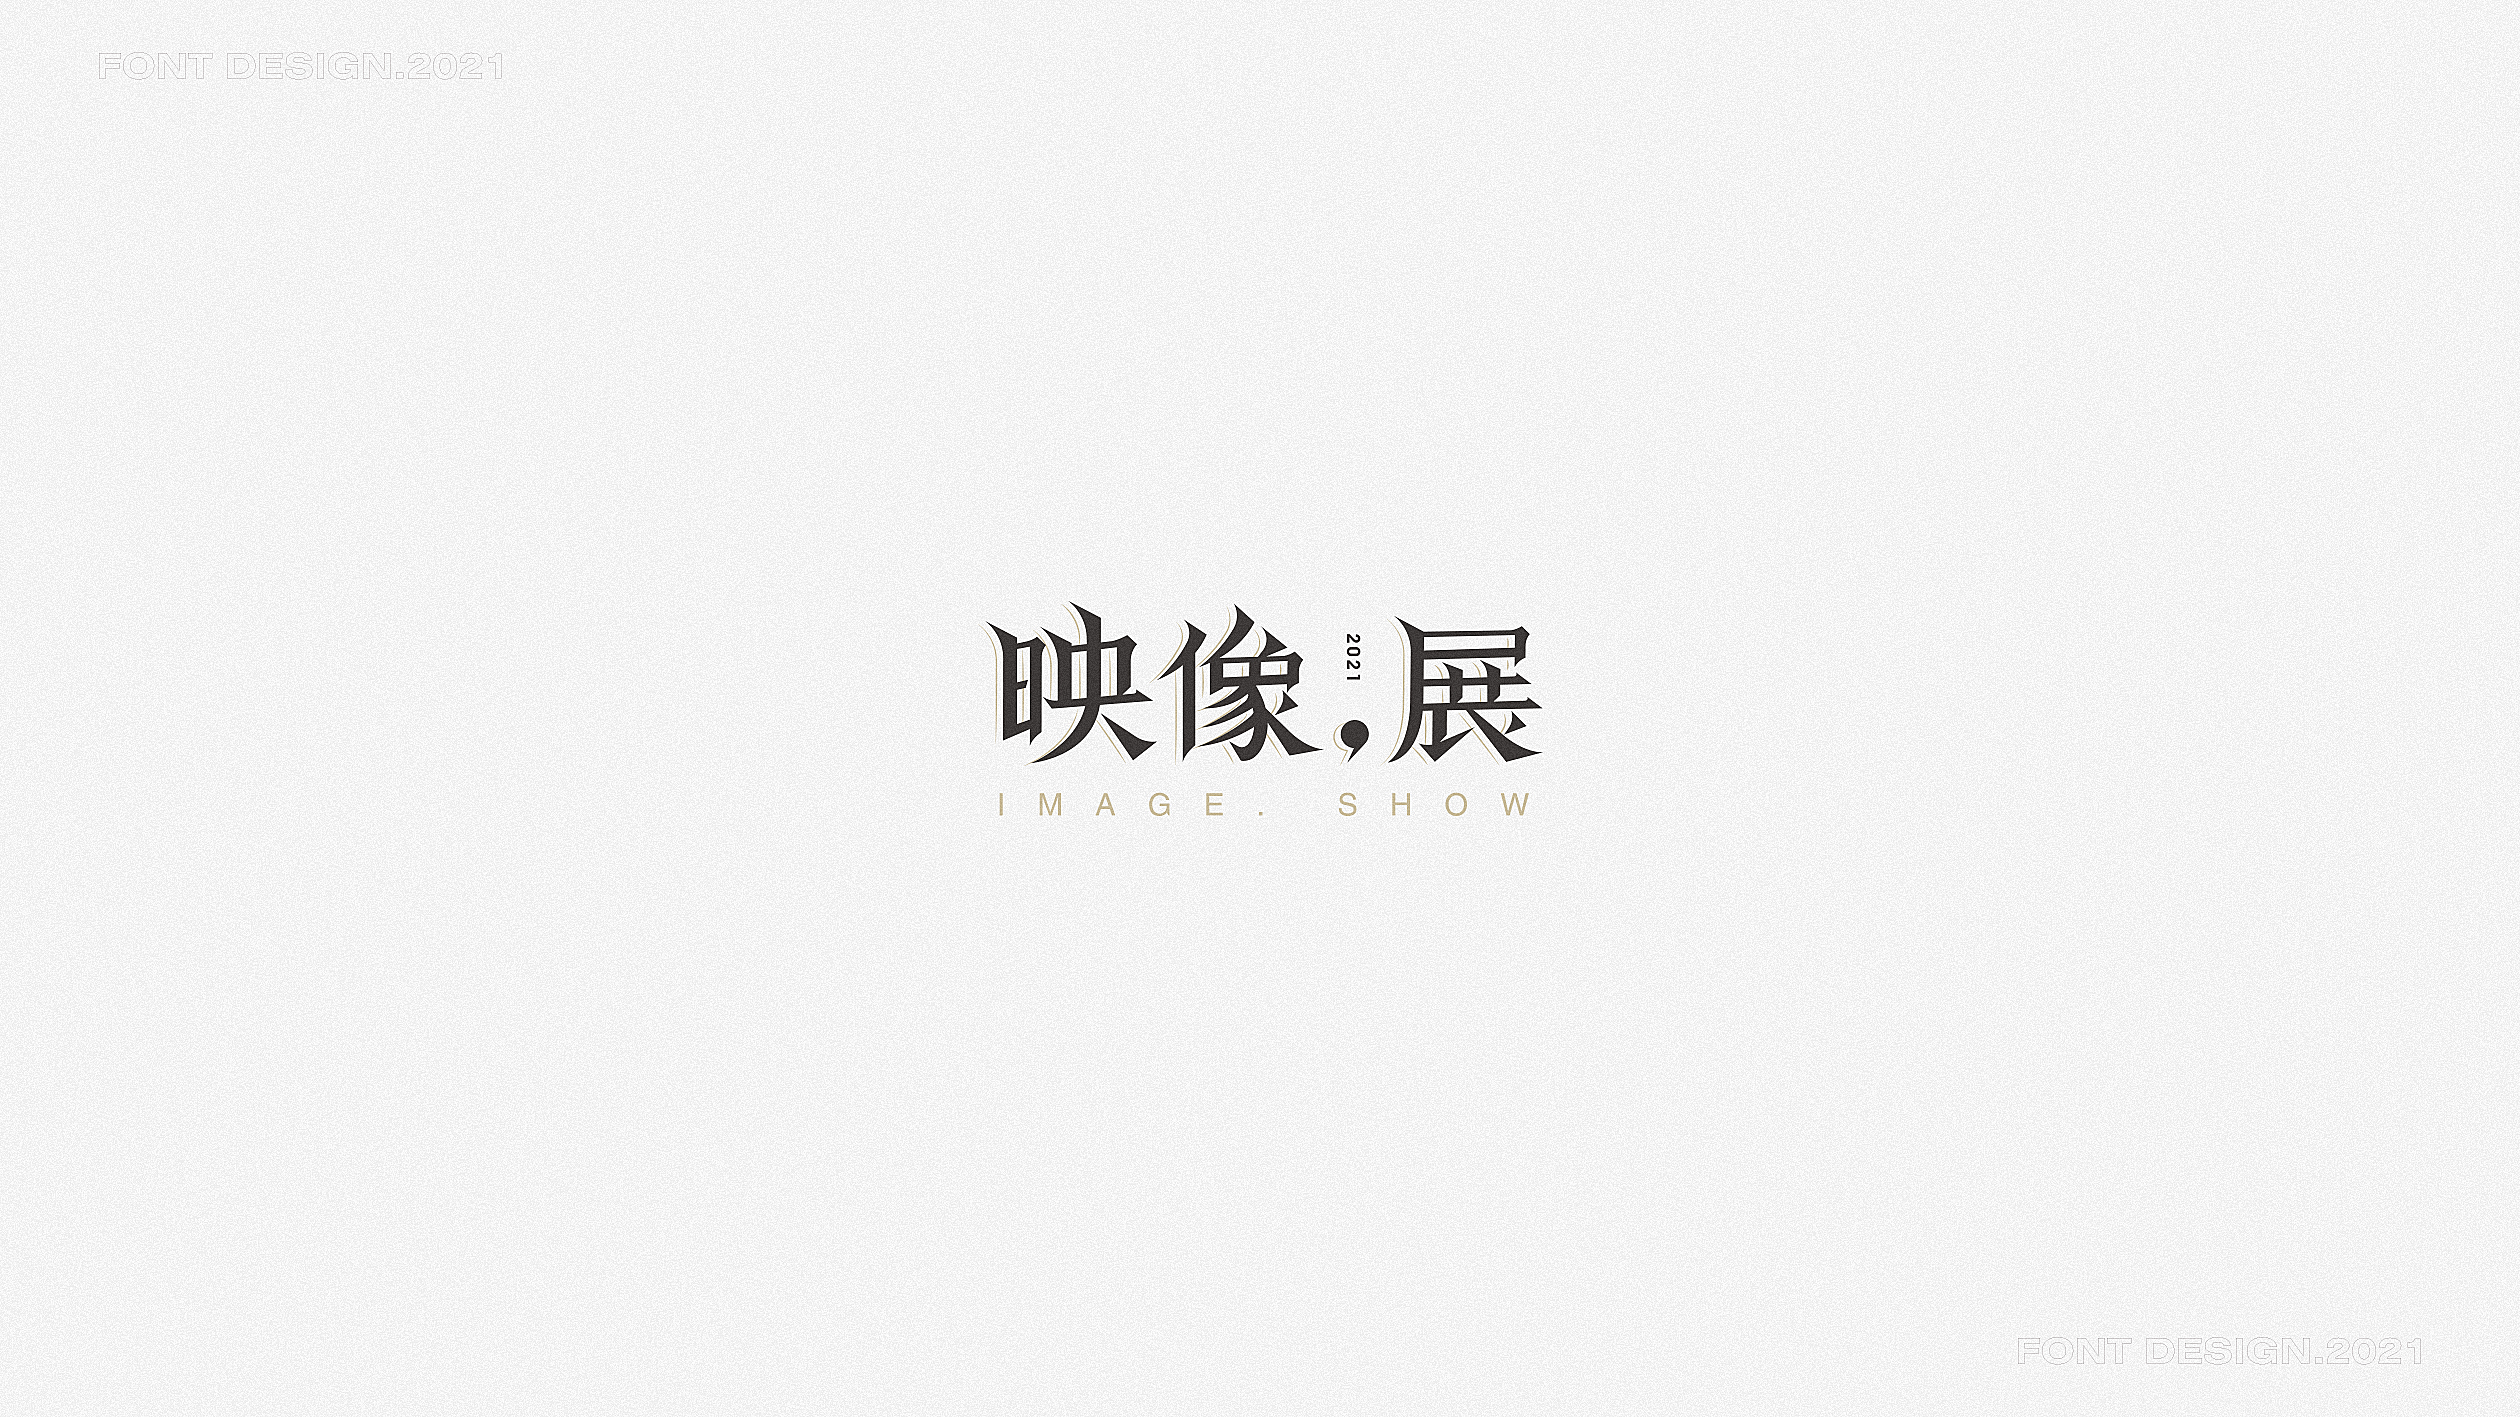 23P Collection of the latest Chinese font design schemes in 2021 #.14